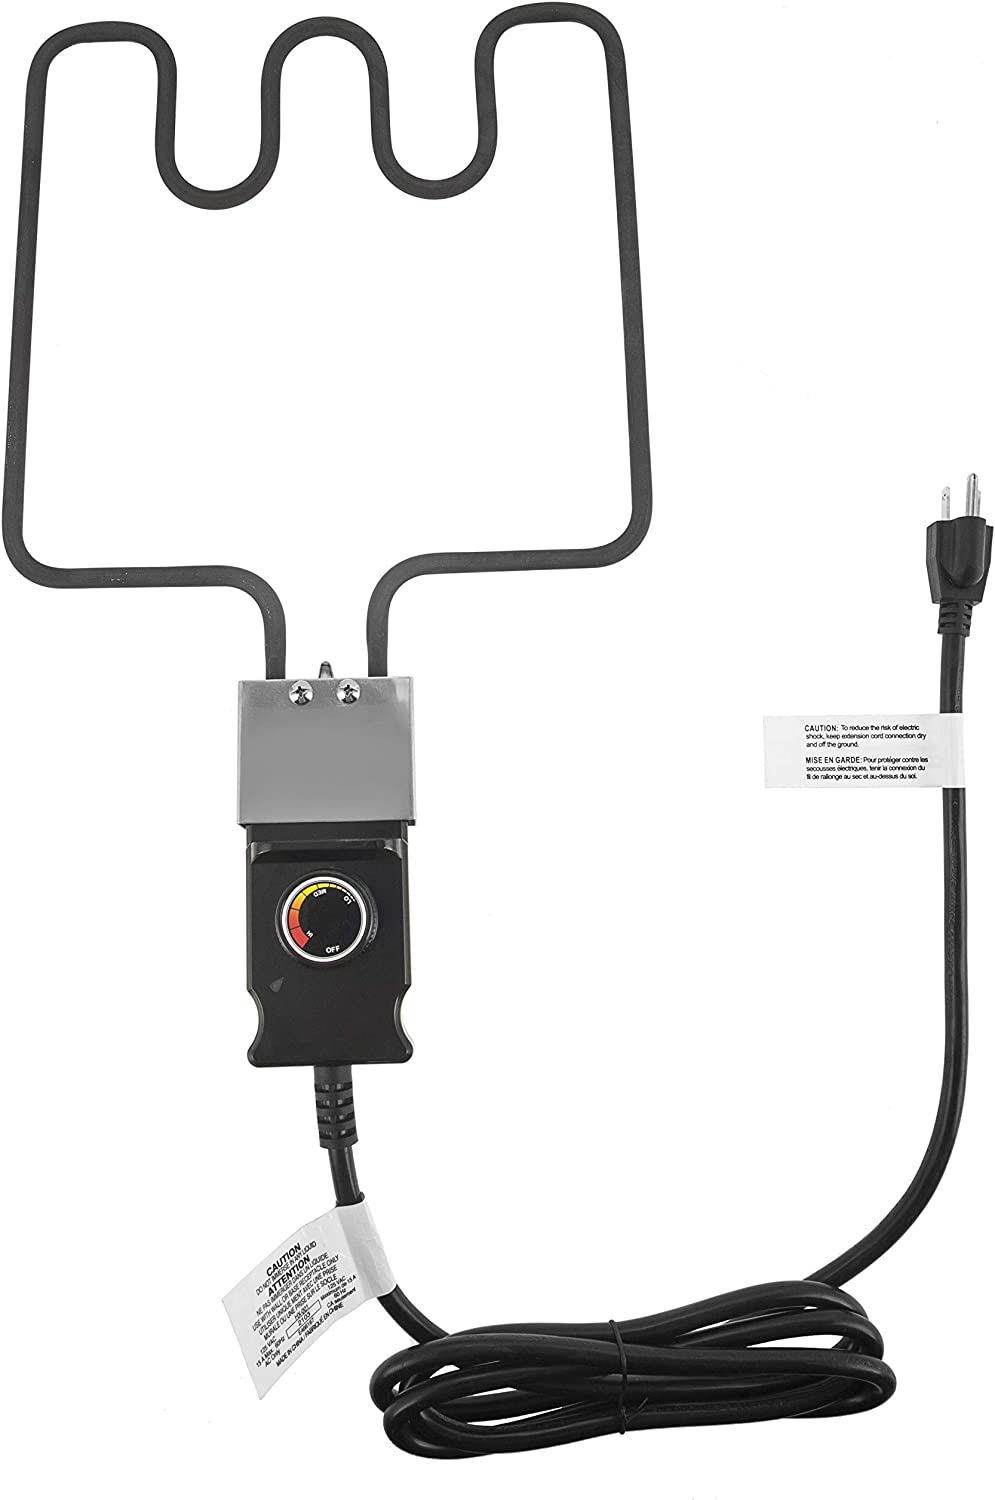 Electric Smoker and Grill Heating Element with Adjustable Thermostat Cord Controller for Masterbuilt Smokers & Turkey Fryers